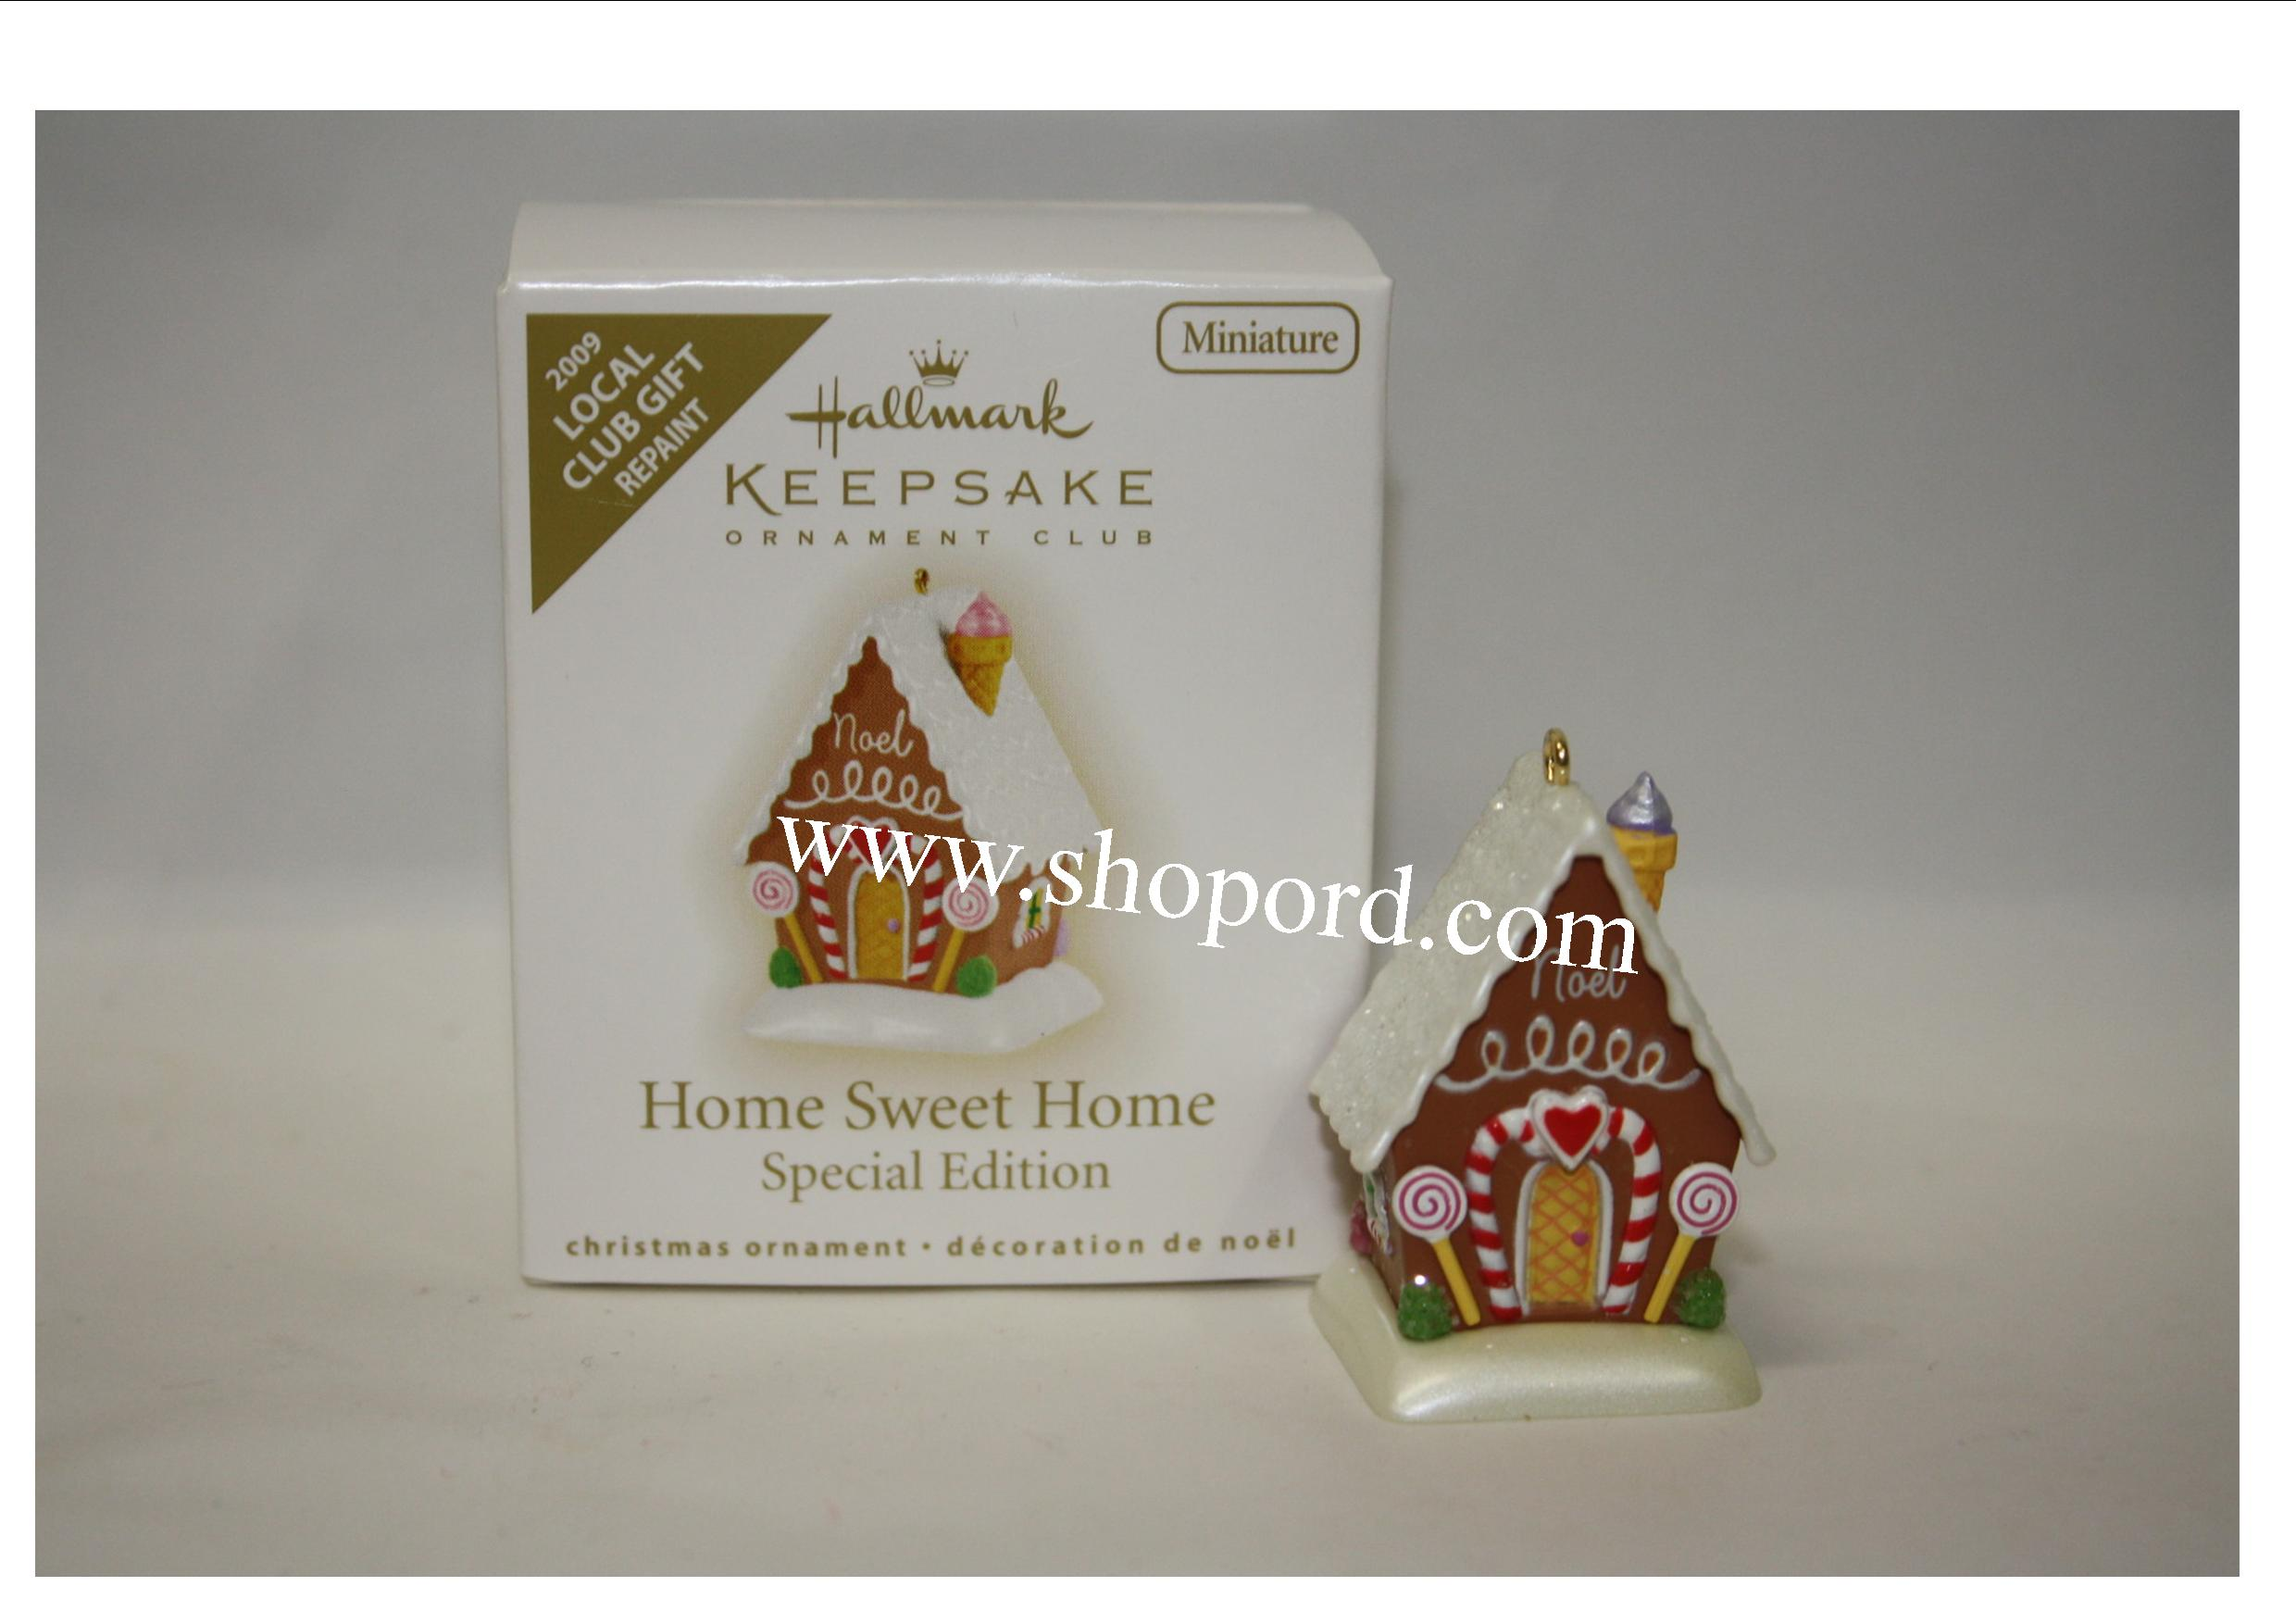 Hallmark 2009 Home Sweet Home Special Edition Miniature Repaint Keepsake Ornament Local Club Gift QXC9007